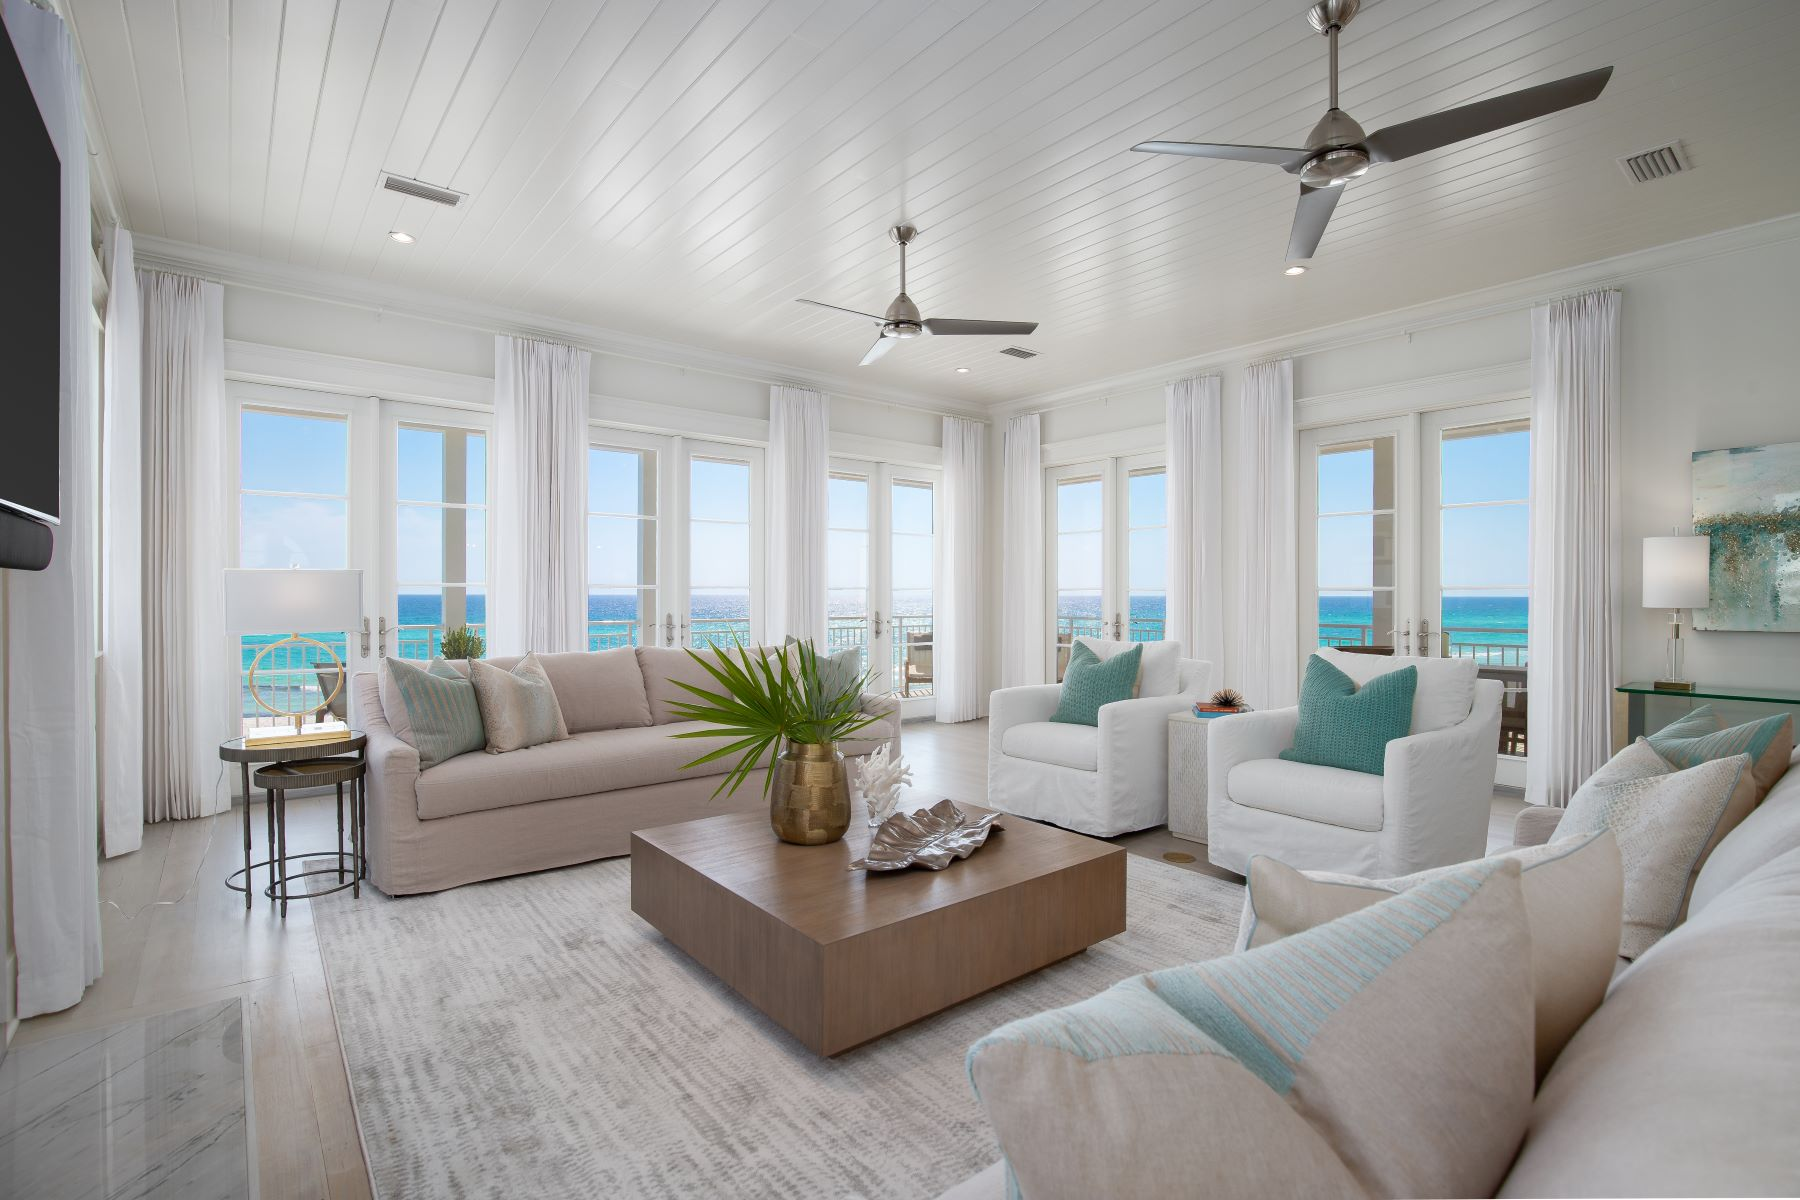 Single Family Homes for Sale at Gulf Front Home With Pool and Private Beach Access 125 San Roy Road, Santa Rosa Beach, Florida 32459 United States